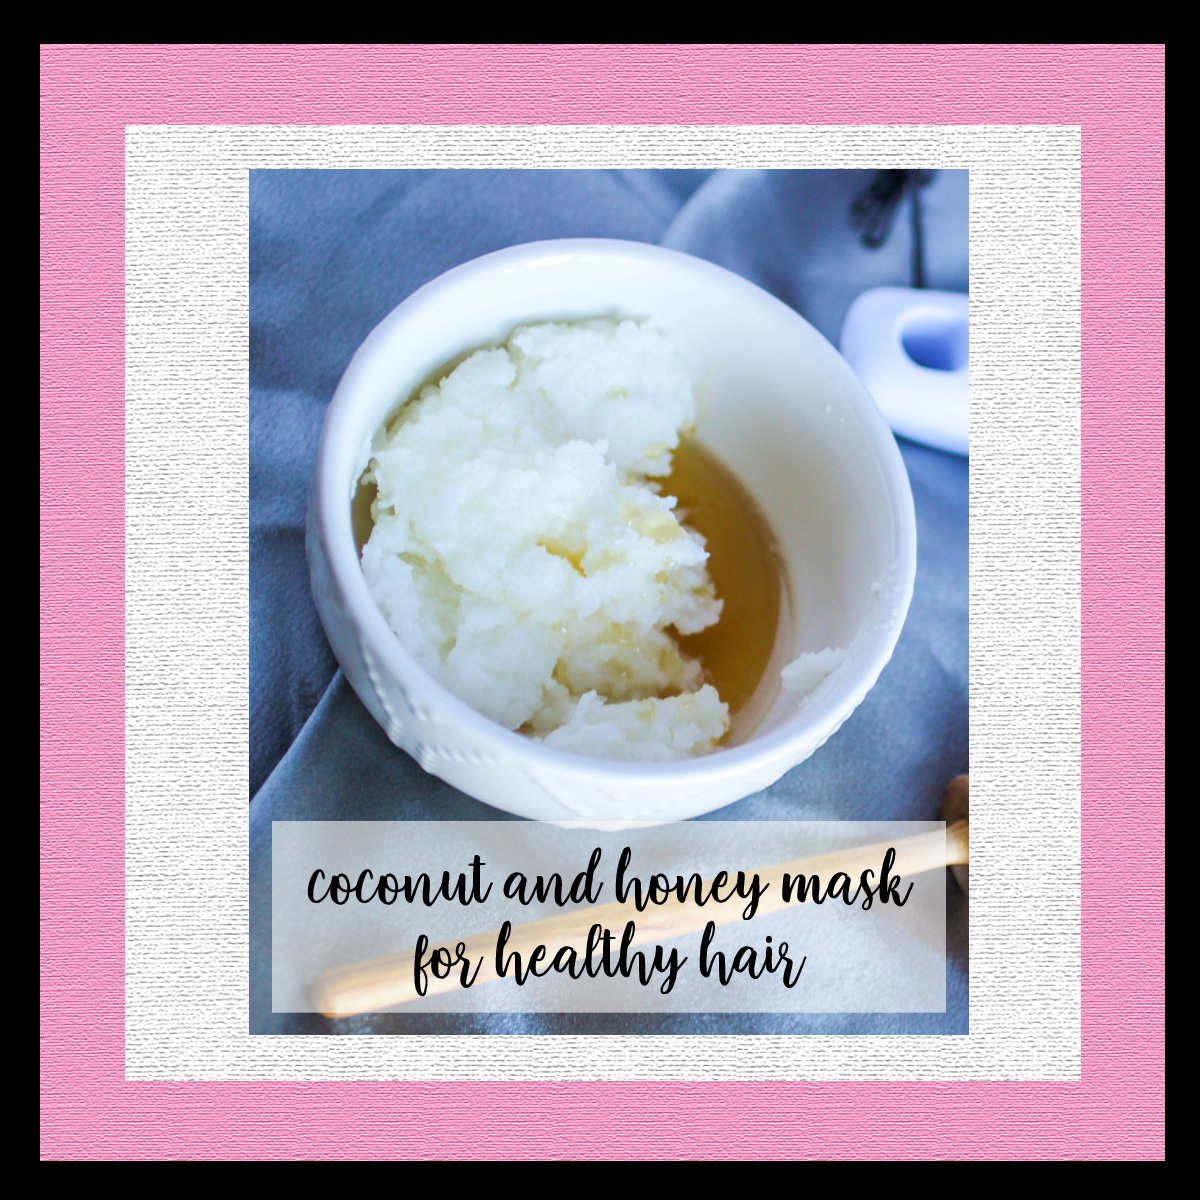 Coconut and Honey Mask for Healthy Hair